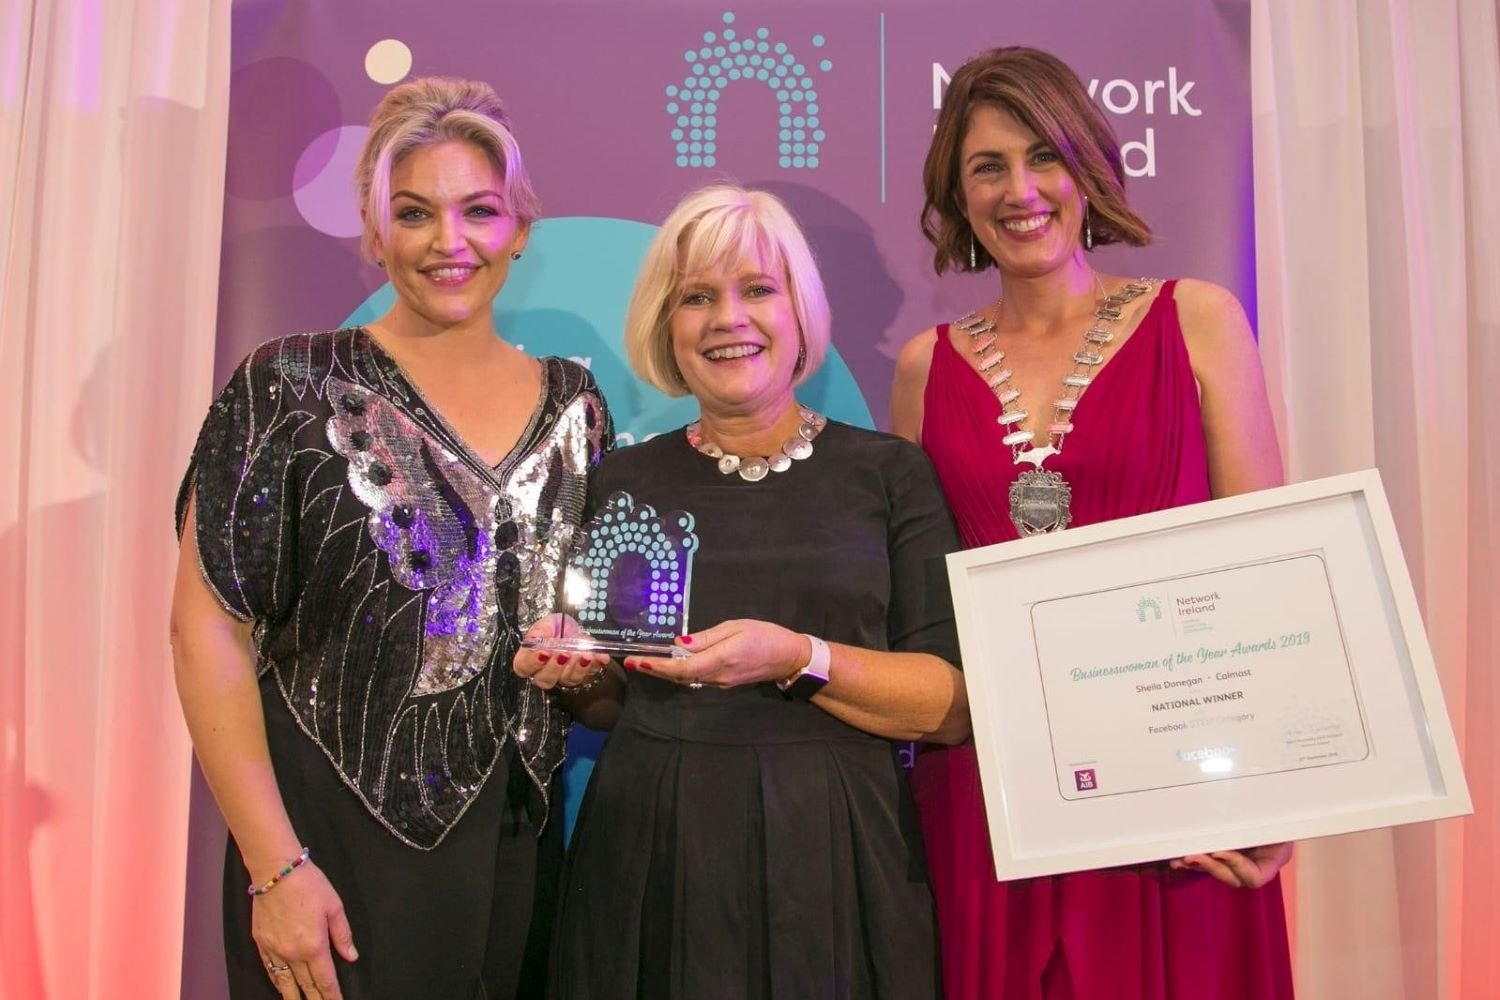 Pictured in September 2019 is Maths Week Ireland Co-founder Dr. Sheila Donegan, Director of Calmast at Waterford Institute of Technology (centre), who was honoured with the Network Ireland National Businesswoman of The Year Award in STEM, pictured with Helen Smyth, Facebook EMEA Ireland (left) and Helen Wycherley, President of Network Ireland.